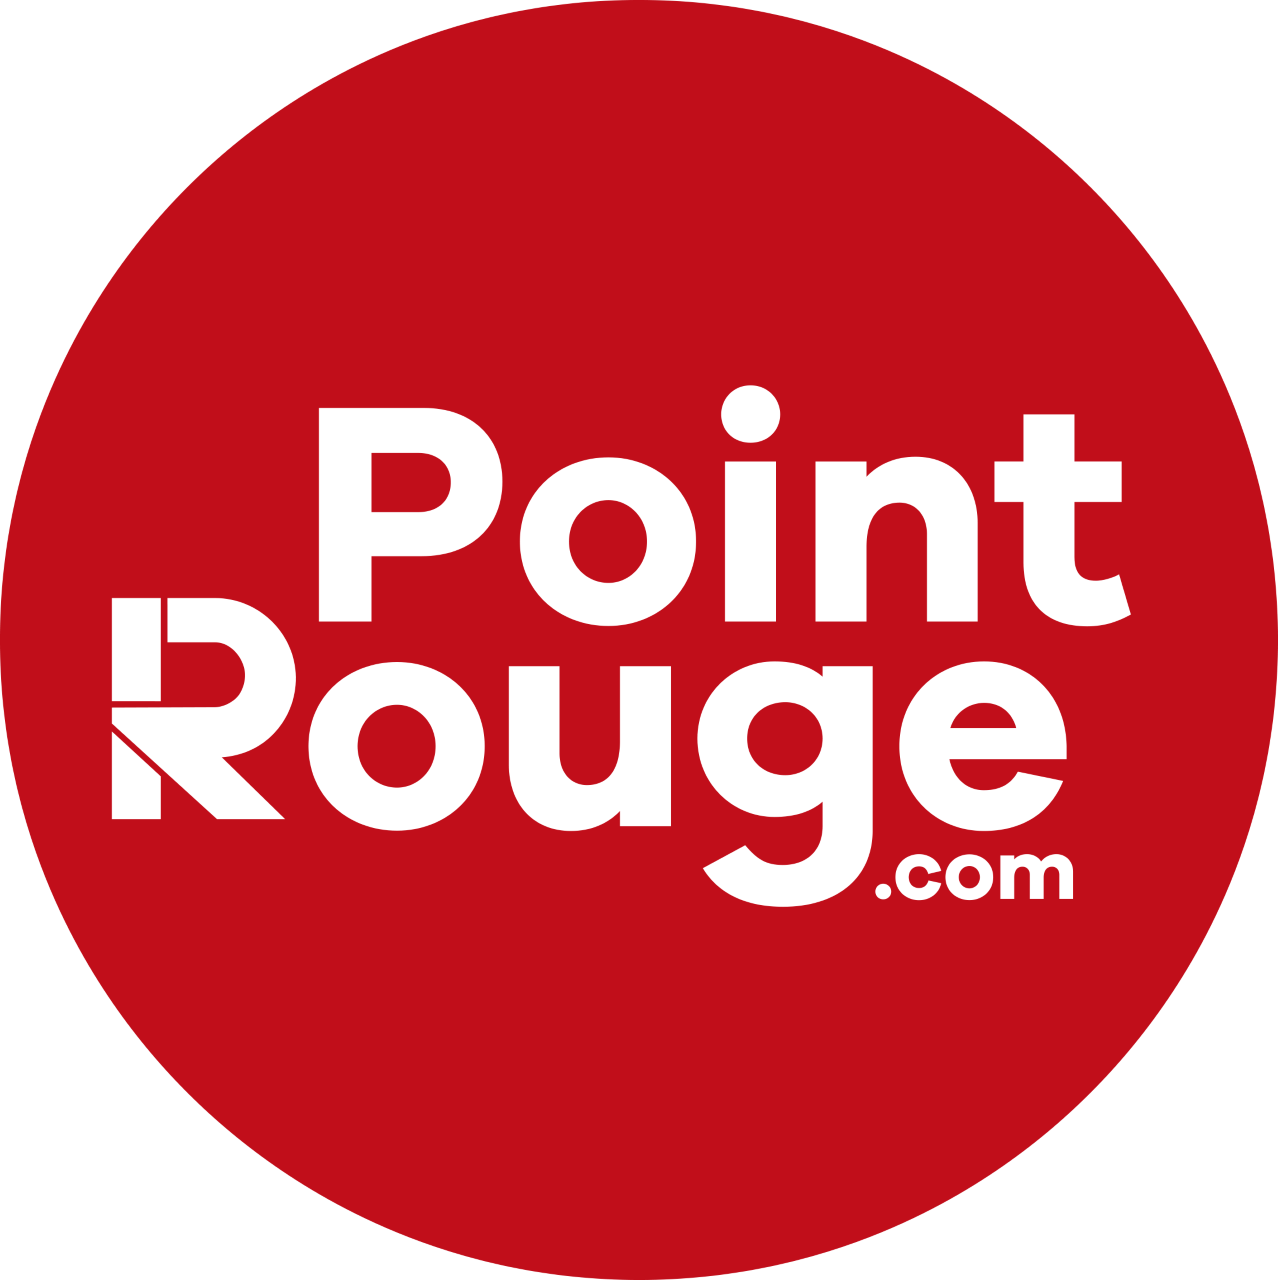 logo point rouge